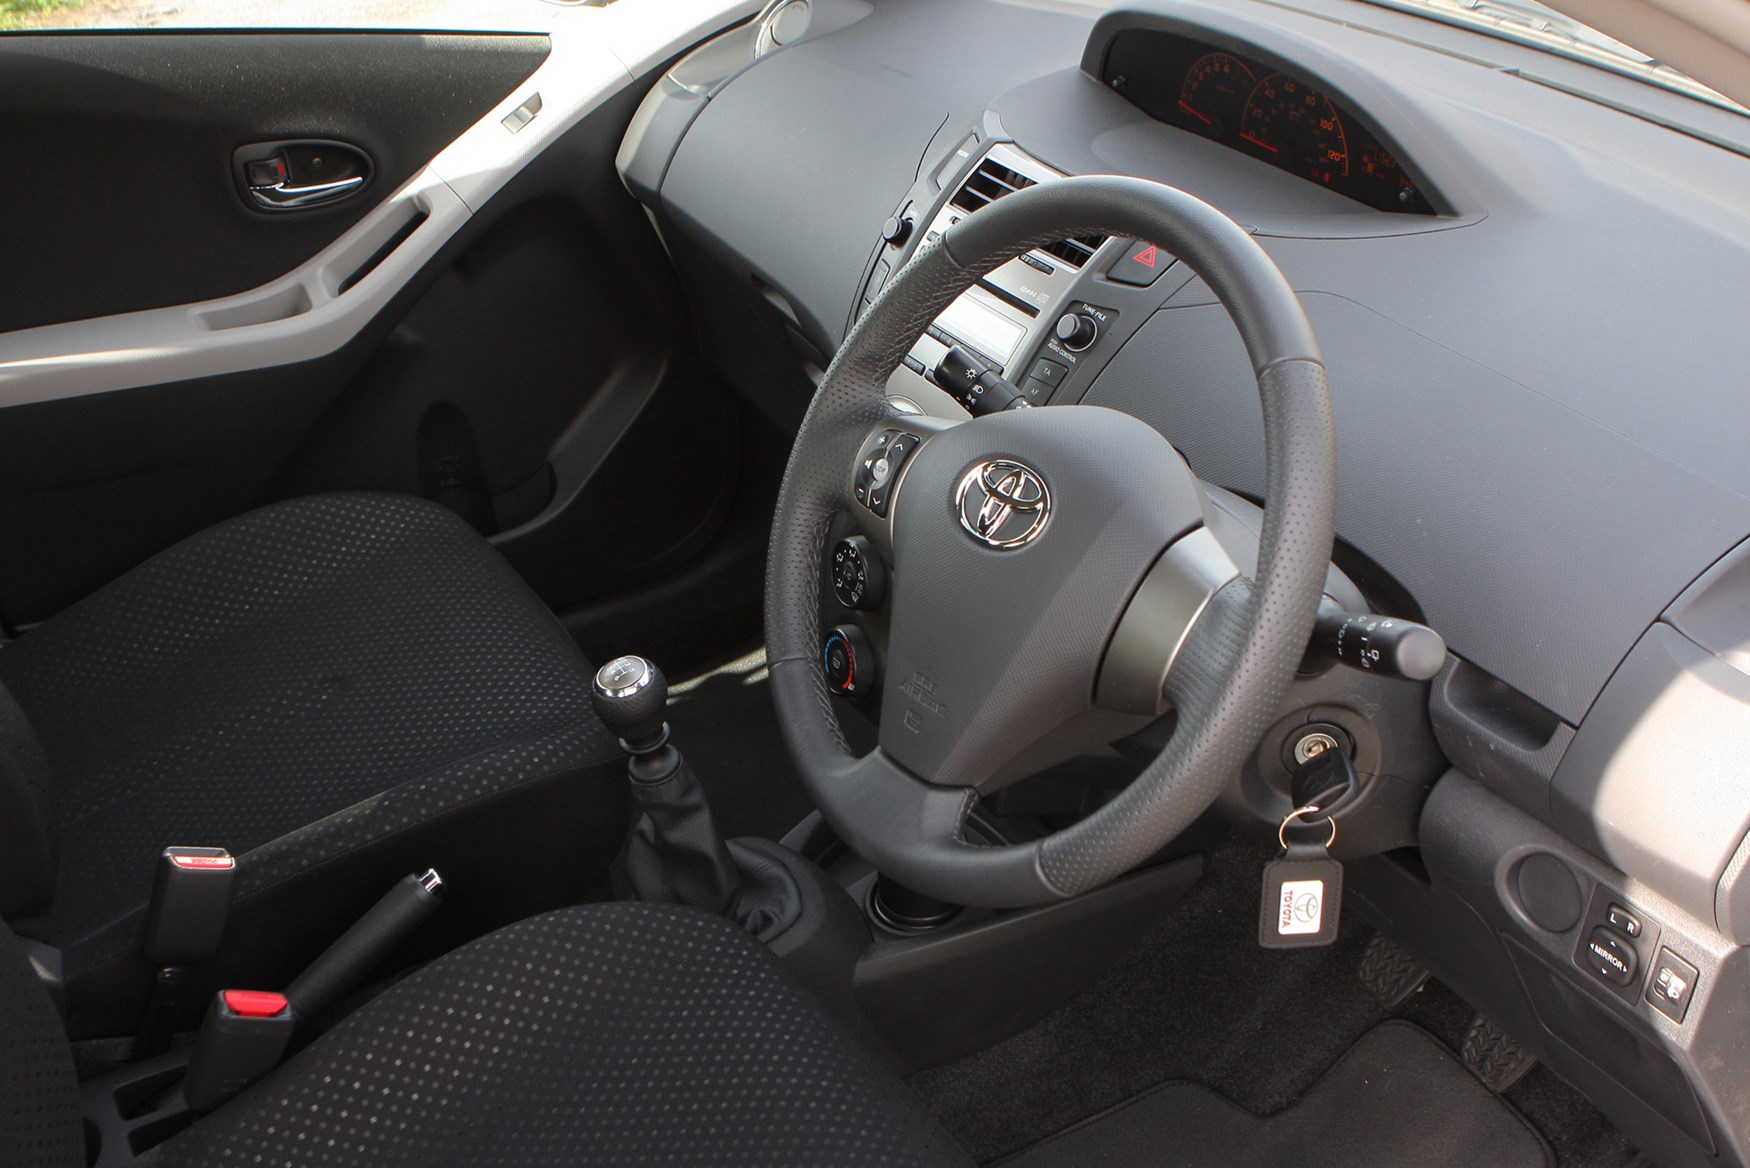 Toyota yaris hatchback 2006 2011 photos parkers for Interior toyota yaris